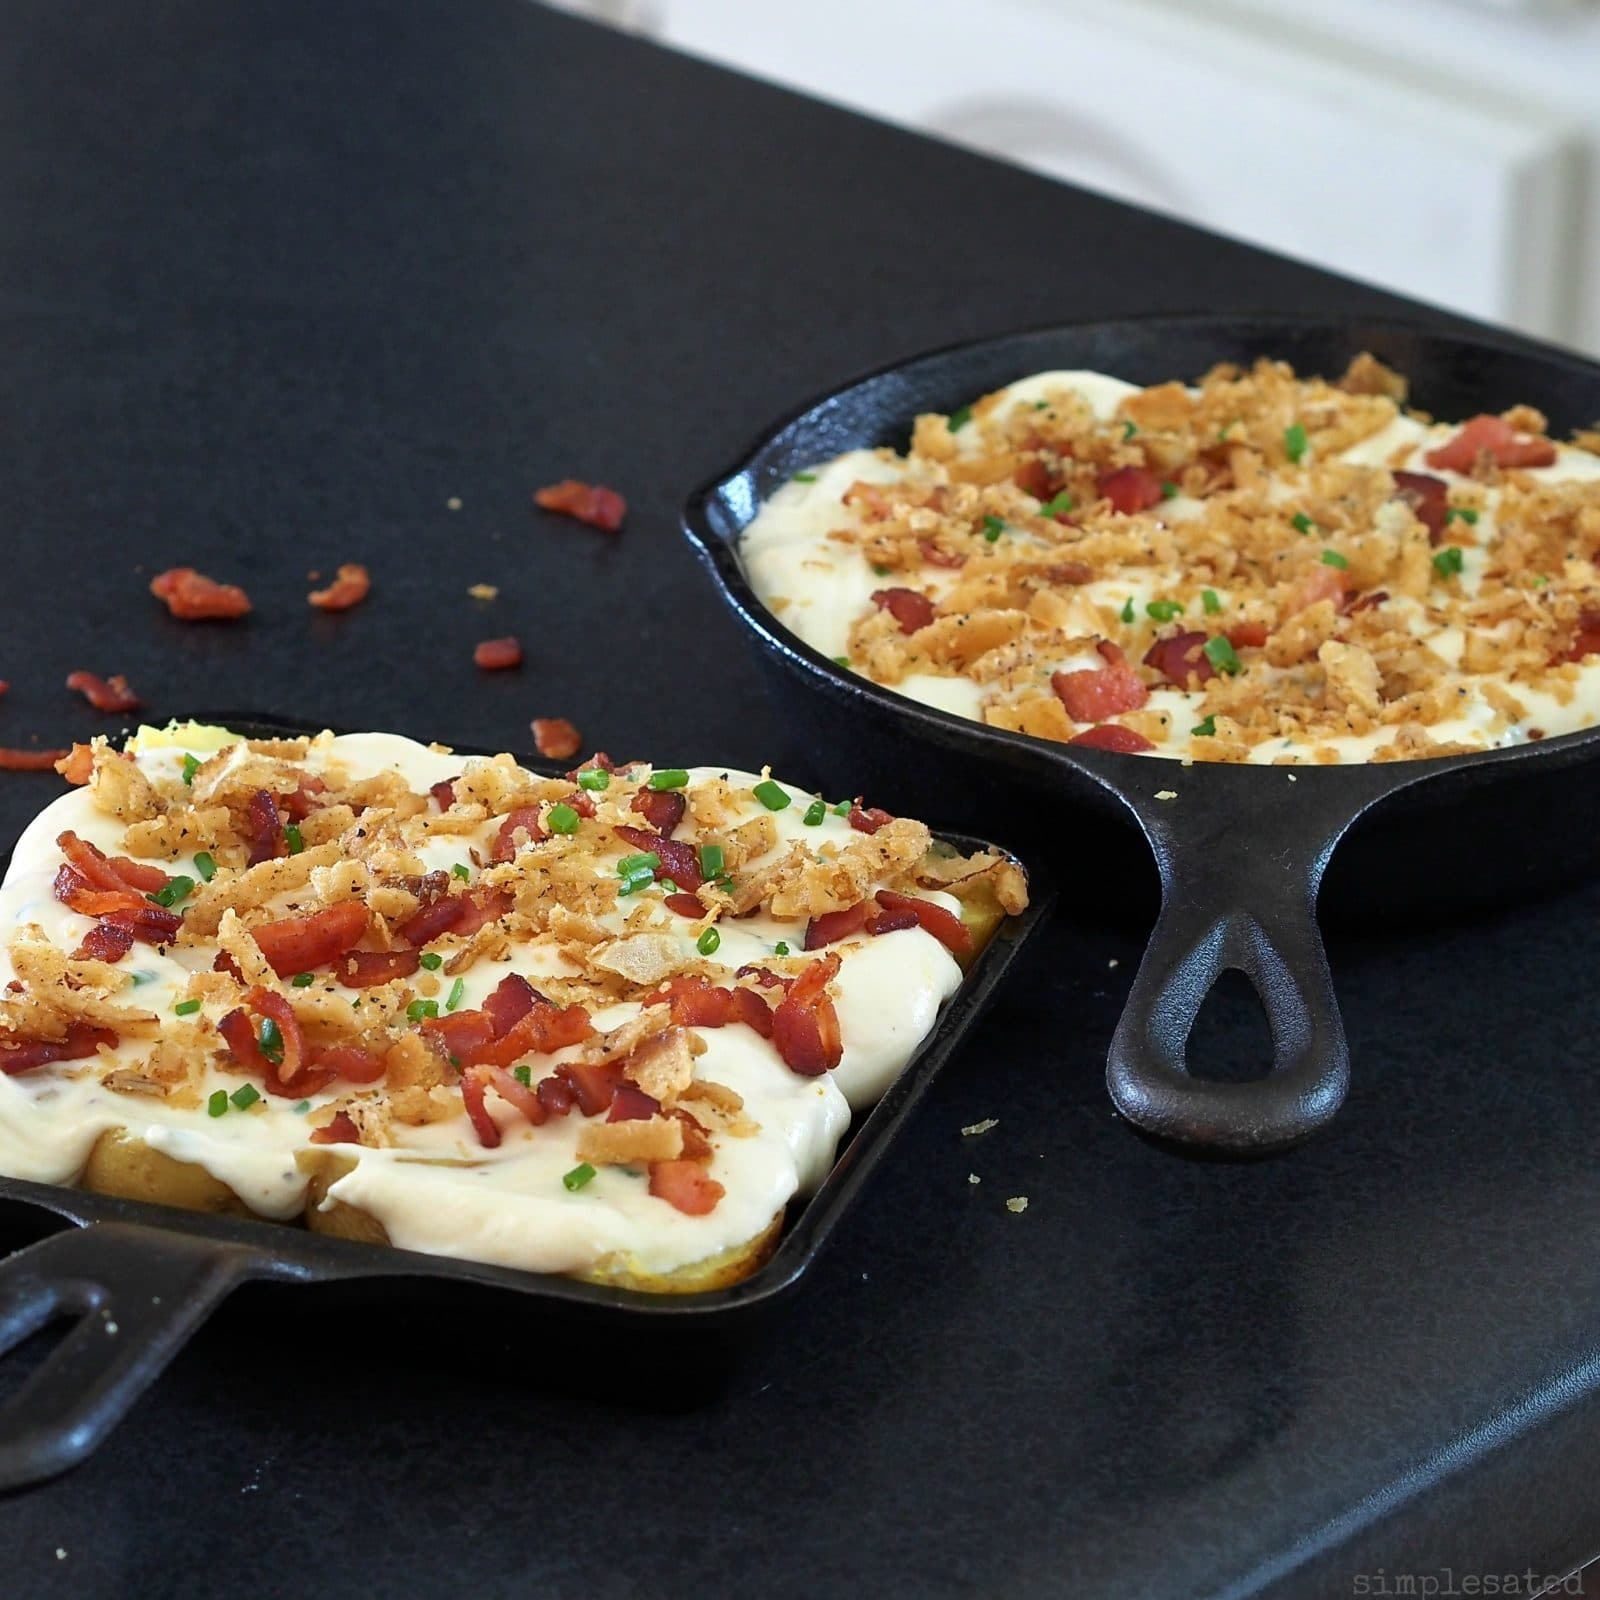 Loaded New Potato Casserole - roasted new potatoes combined with cheese, chives, sour cream and bacon. Serve as a side or a beautiful appetizer.